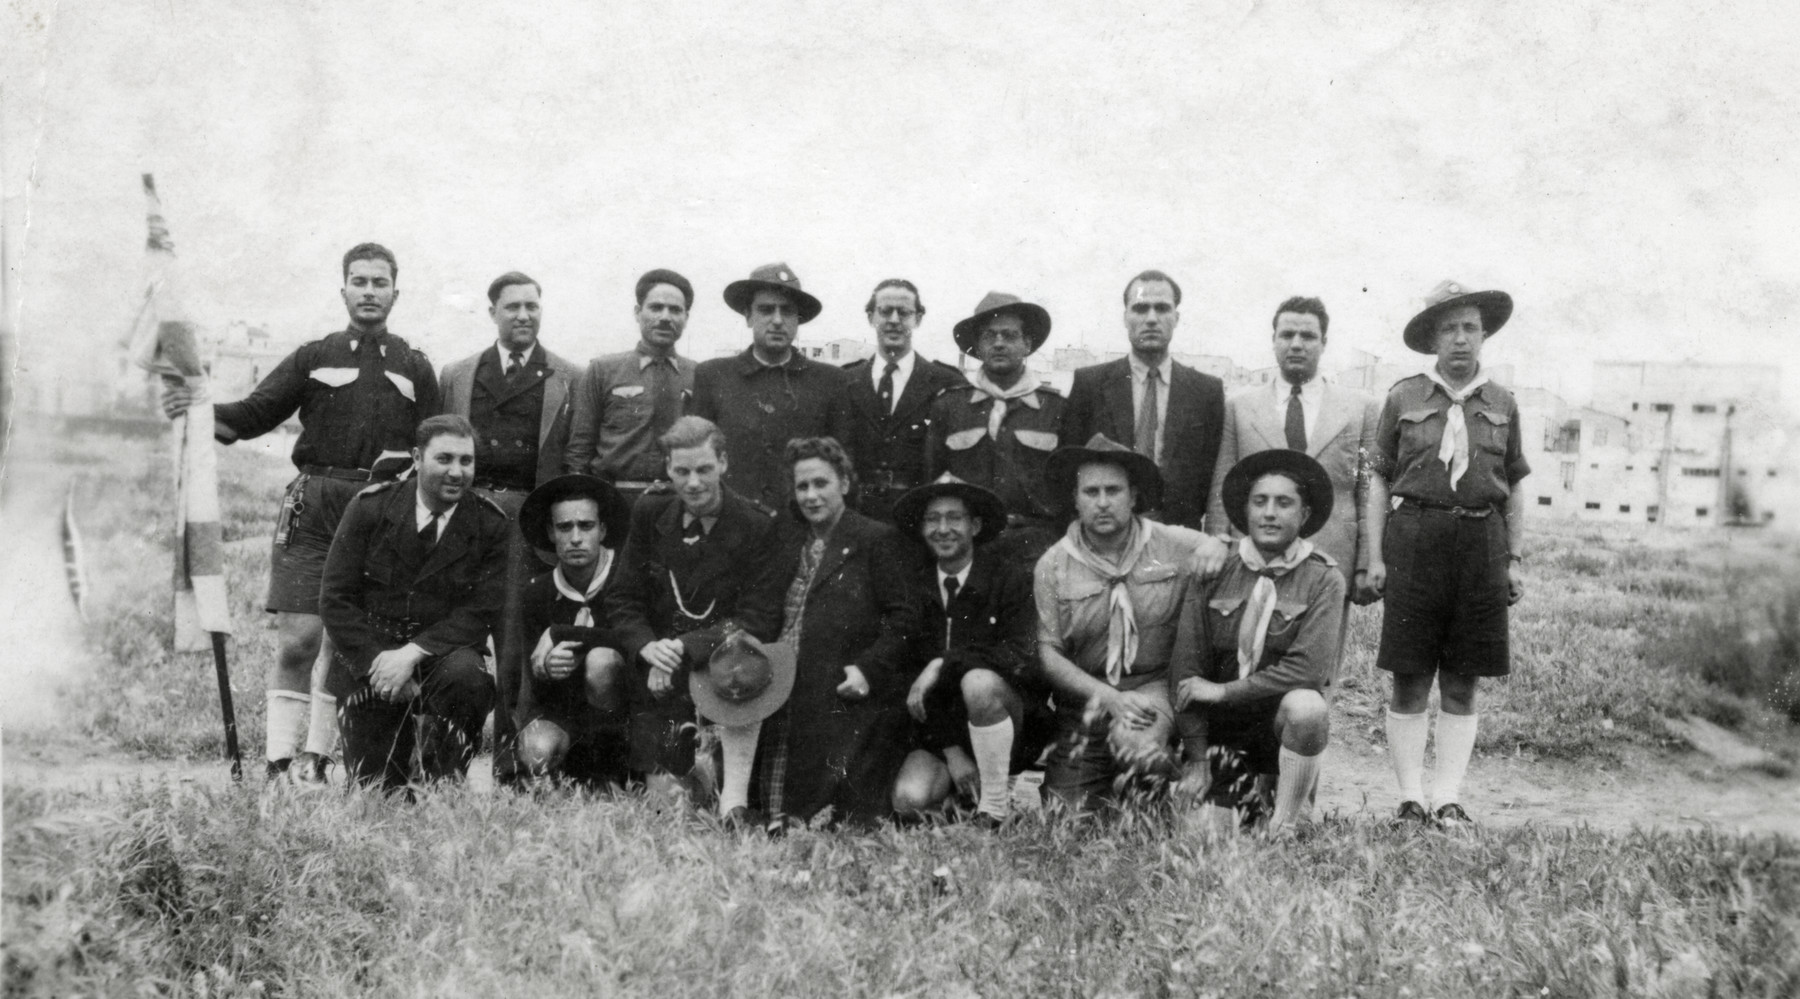 Staff members of the Betar Zionist scout movement  in postwar Tunisia.  Raoul Tayar is pictured on the far right.